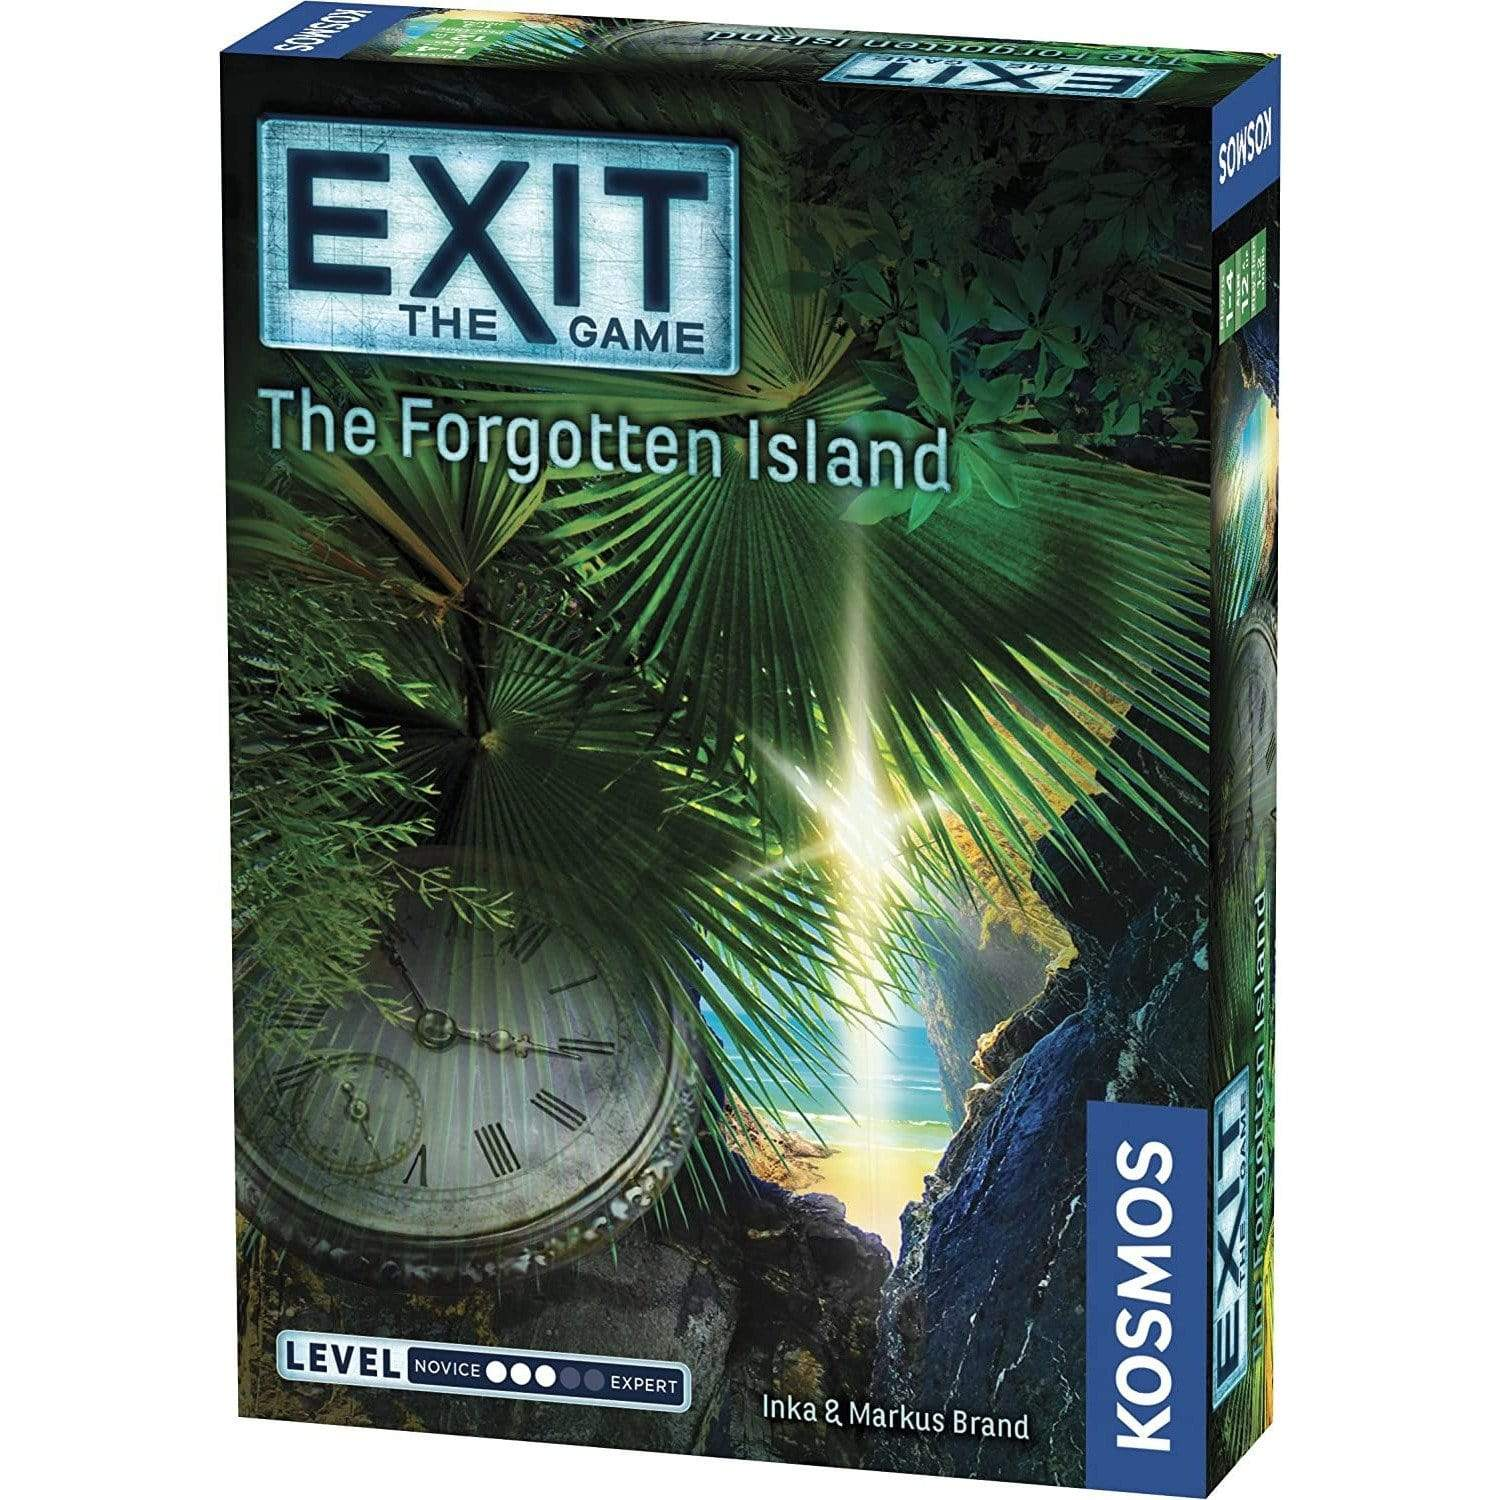 Exit: The Forgotten Island Thames & Kosmos Board Games